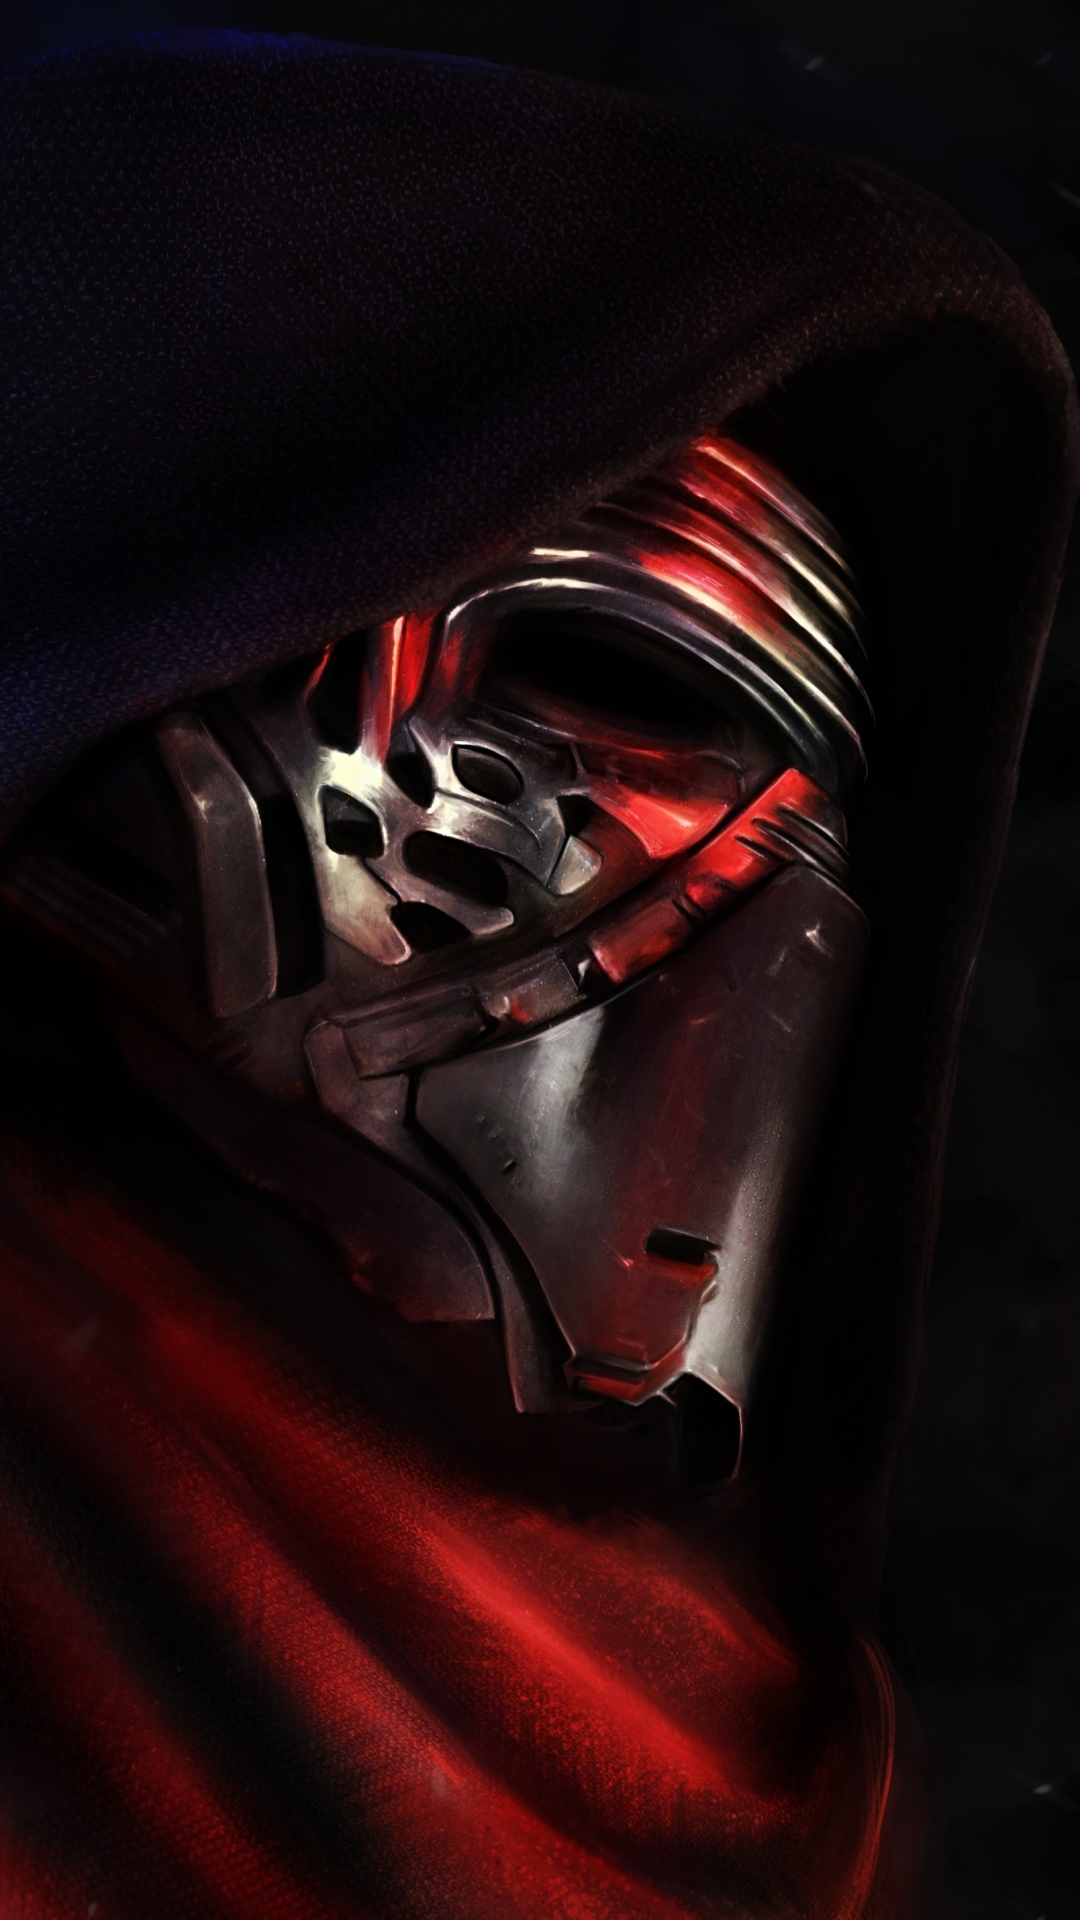 Star Wars The Force Awakens iPhone wallpapers 1080x1920